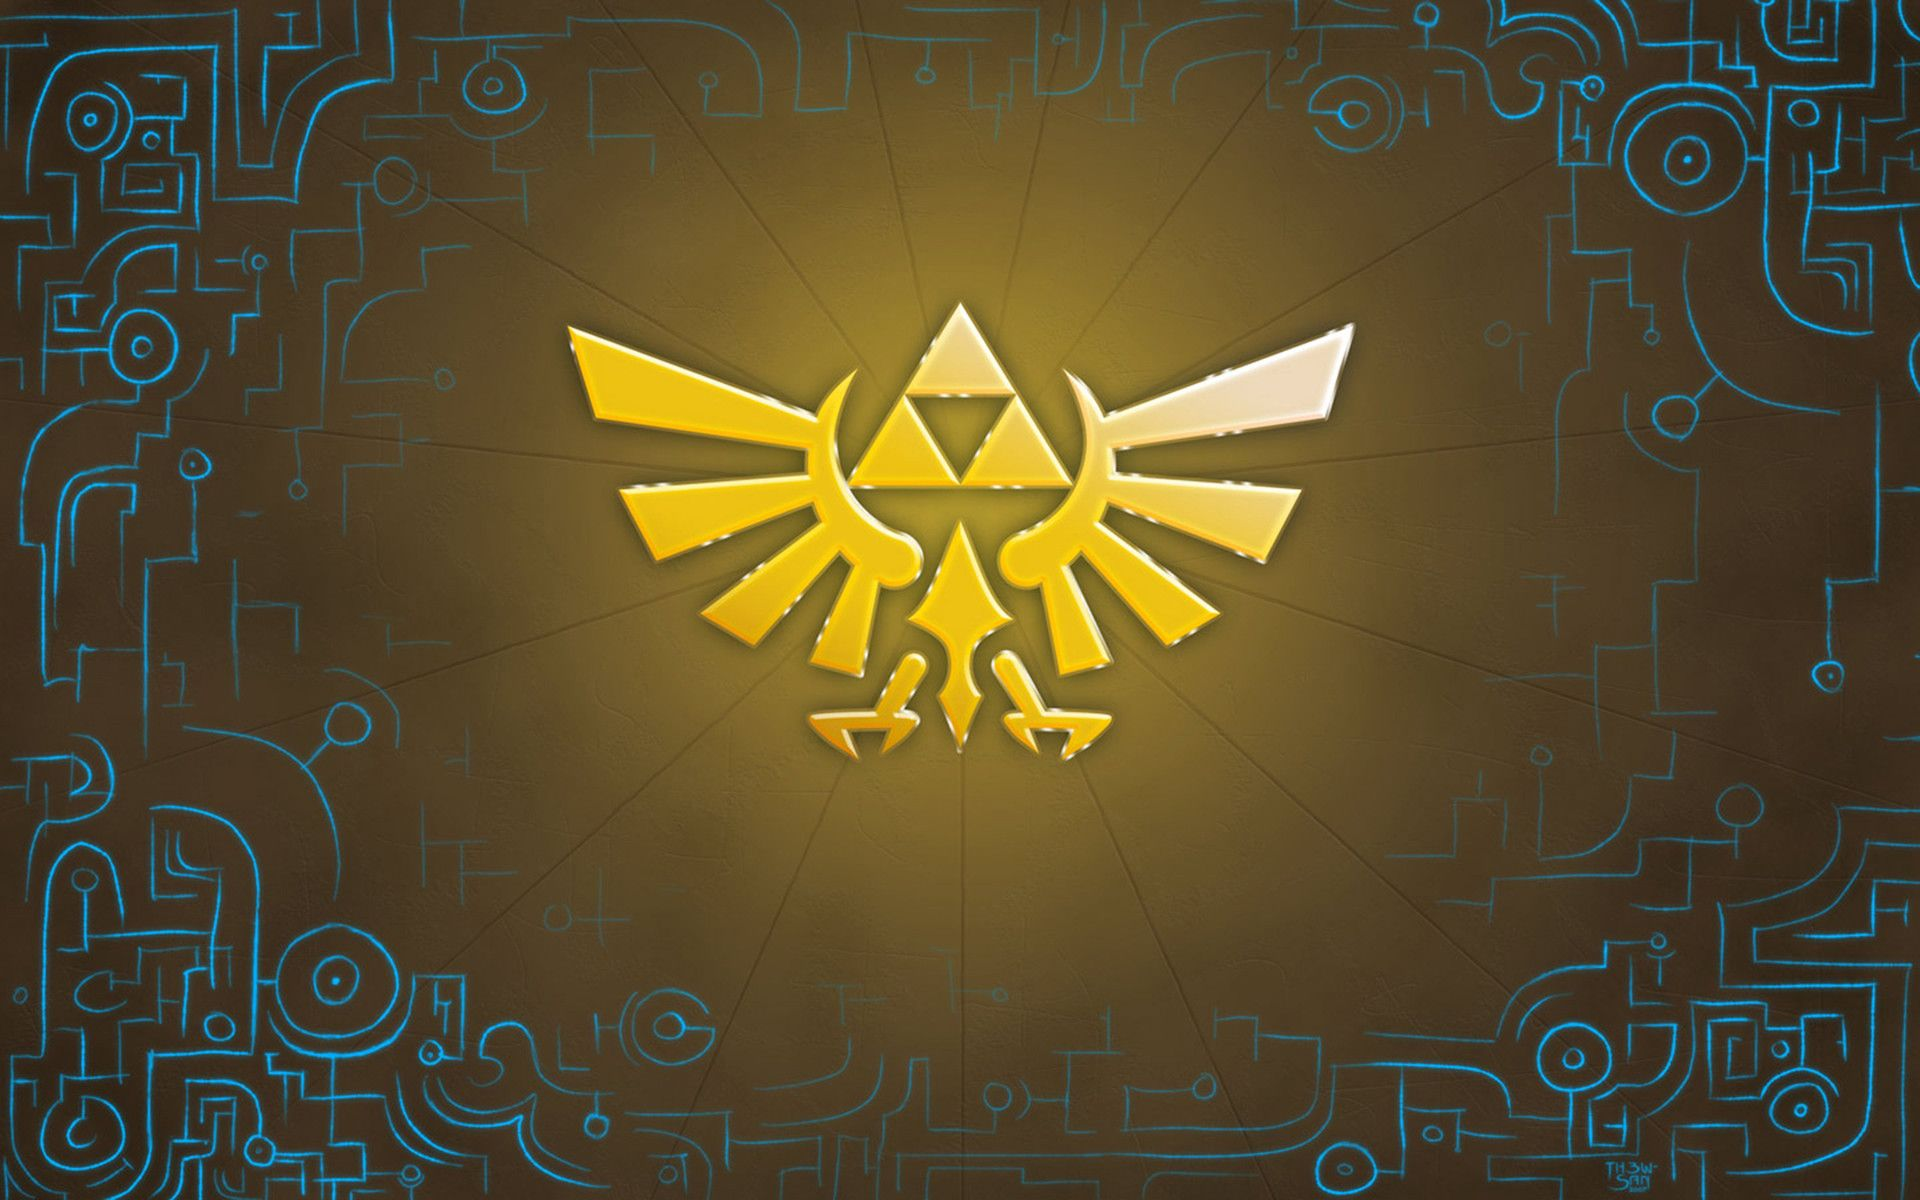 Internet Destroying Wallpaper Dump 12 000 Images Legend Of Zelda Zelda Twilight Princess Triforce